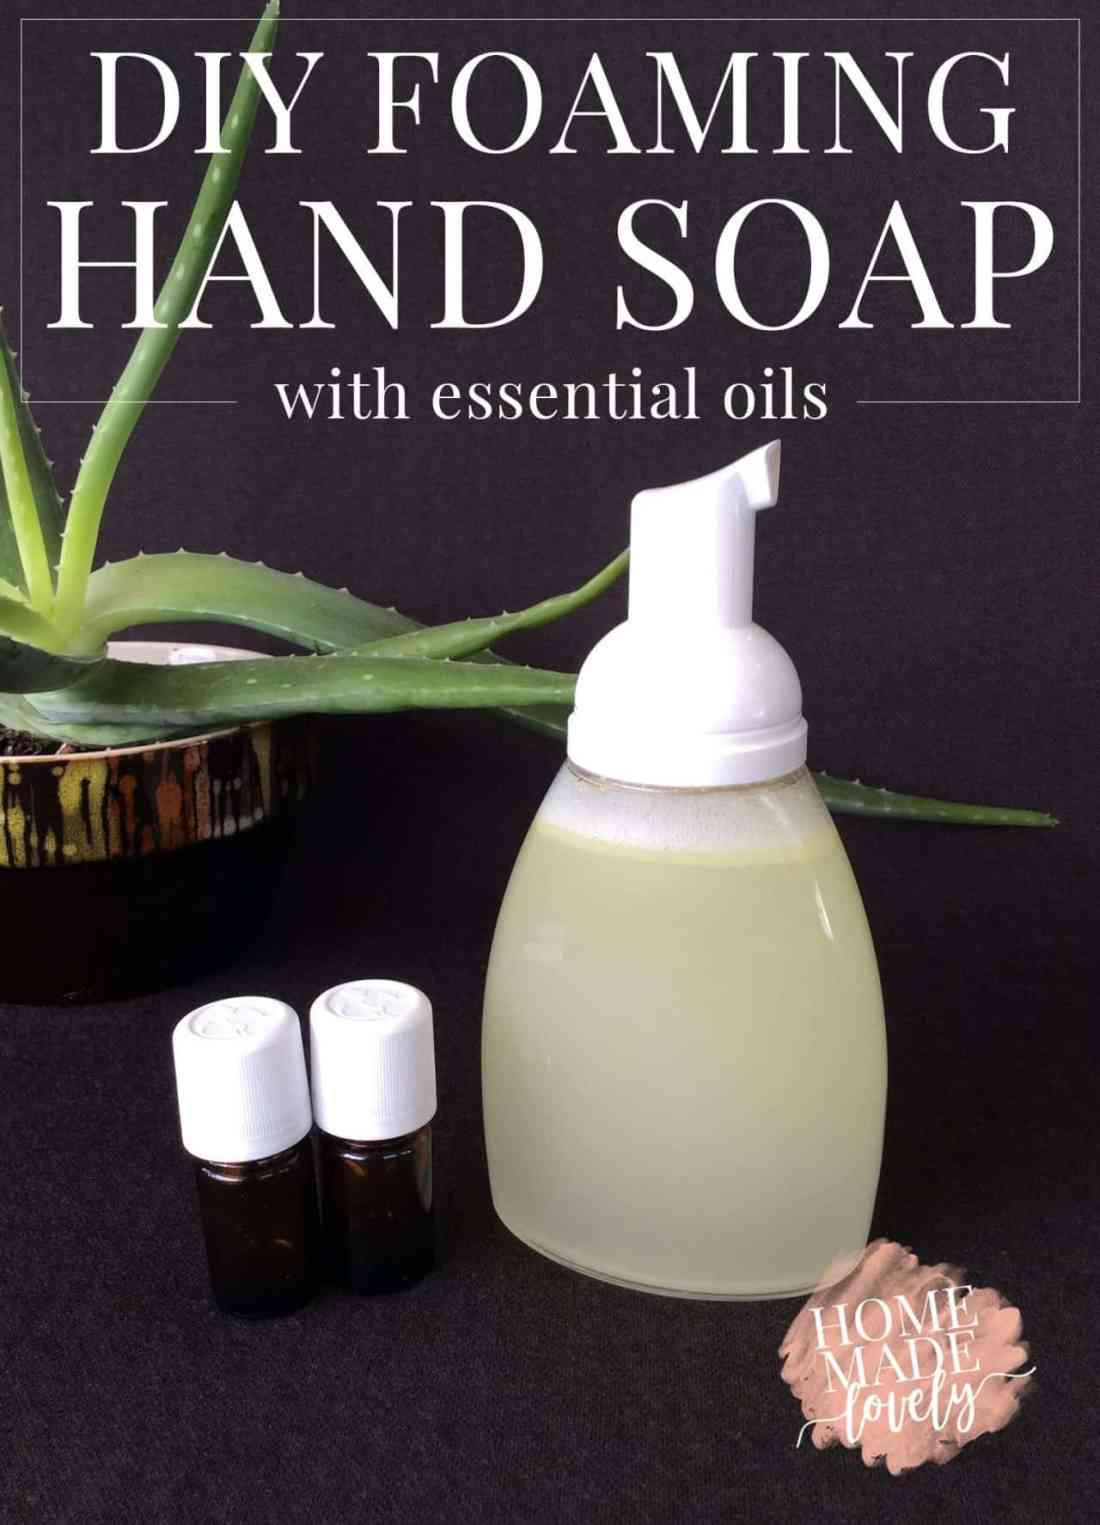 Diy Foaming Hand Soap How To Make Foaming Hand Soap With